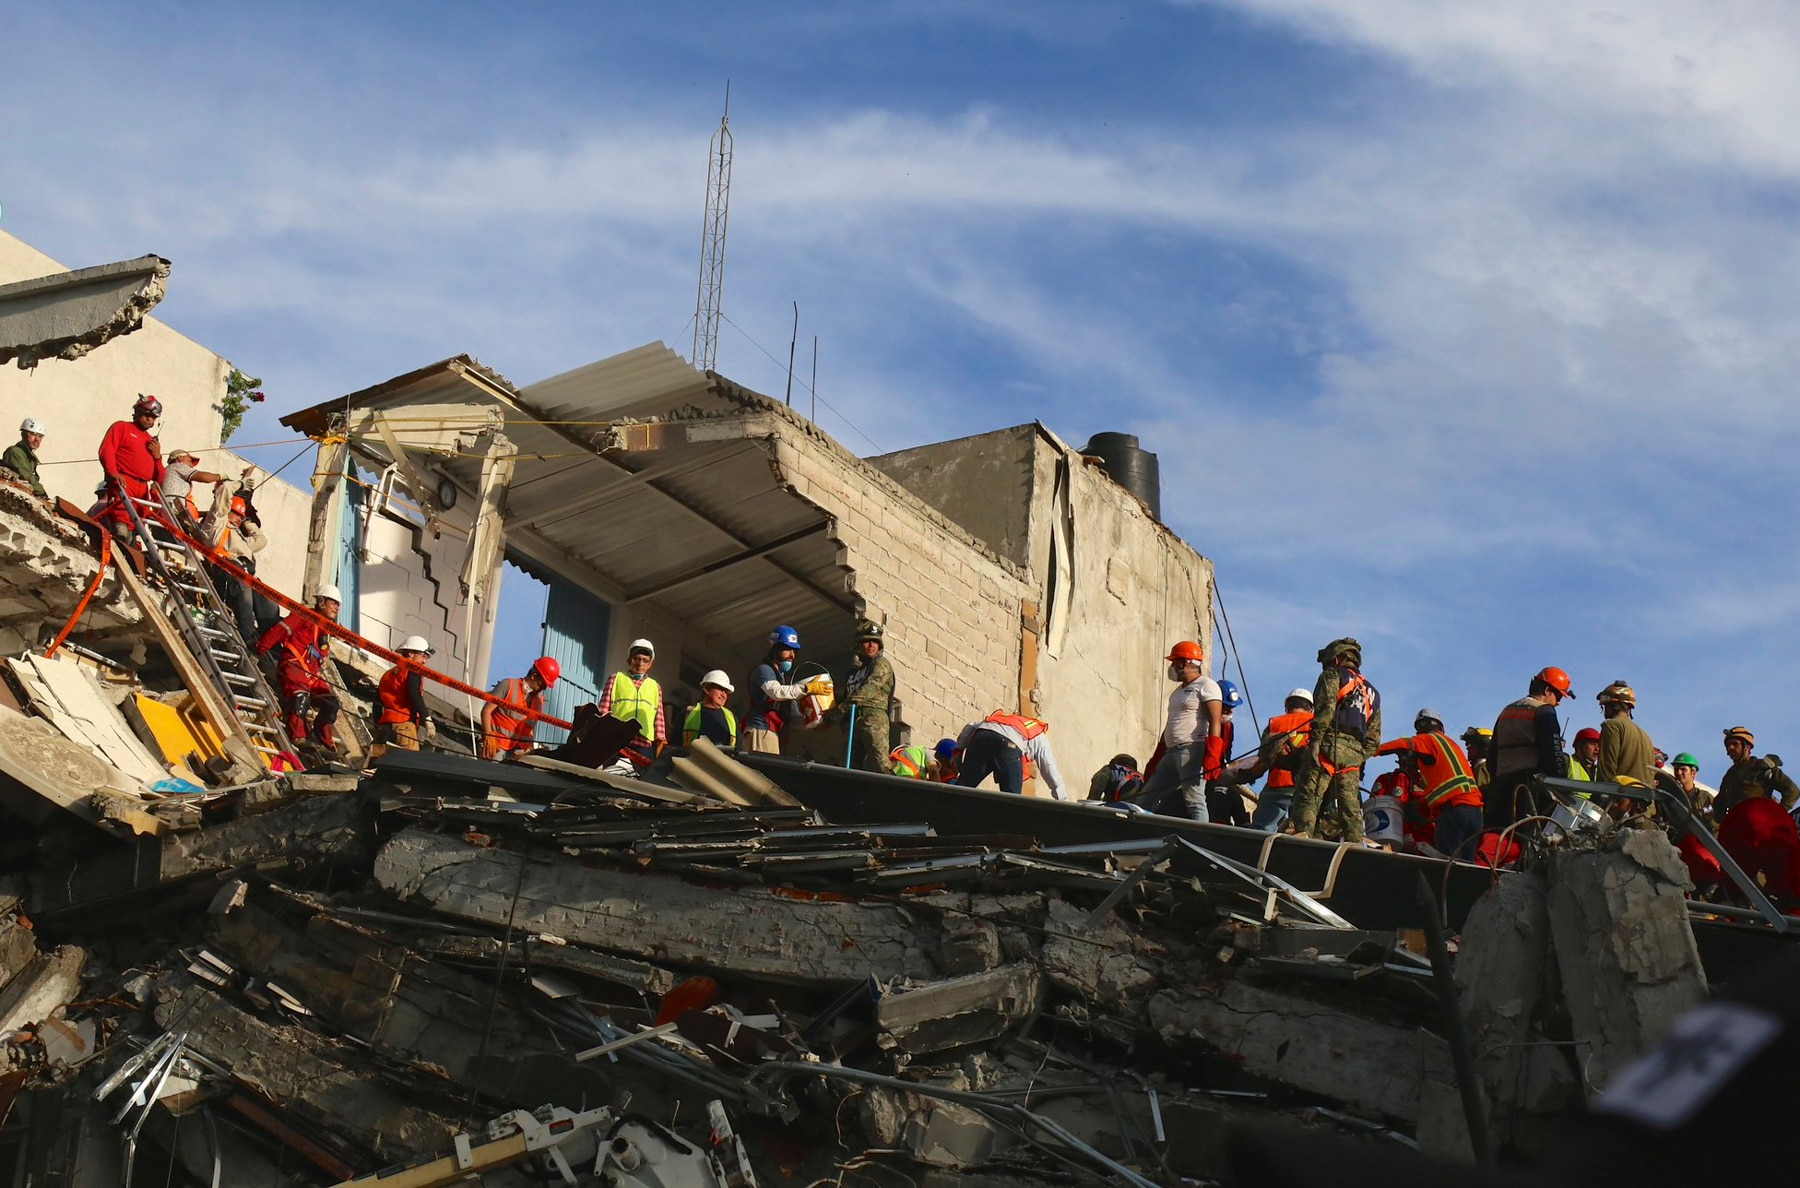 People wearing safety gear standing amid rubble and broken buildings (USAID Office of U.S. Foreign Disaster Assistance)